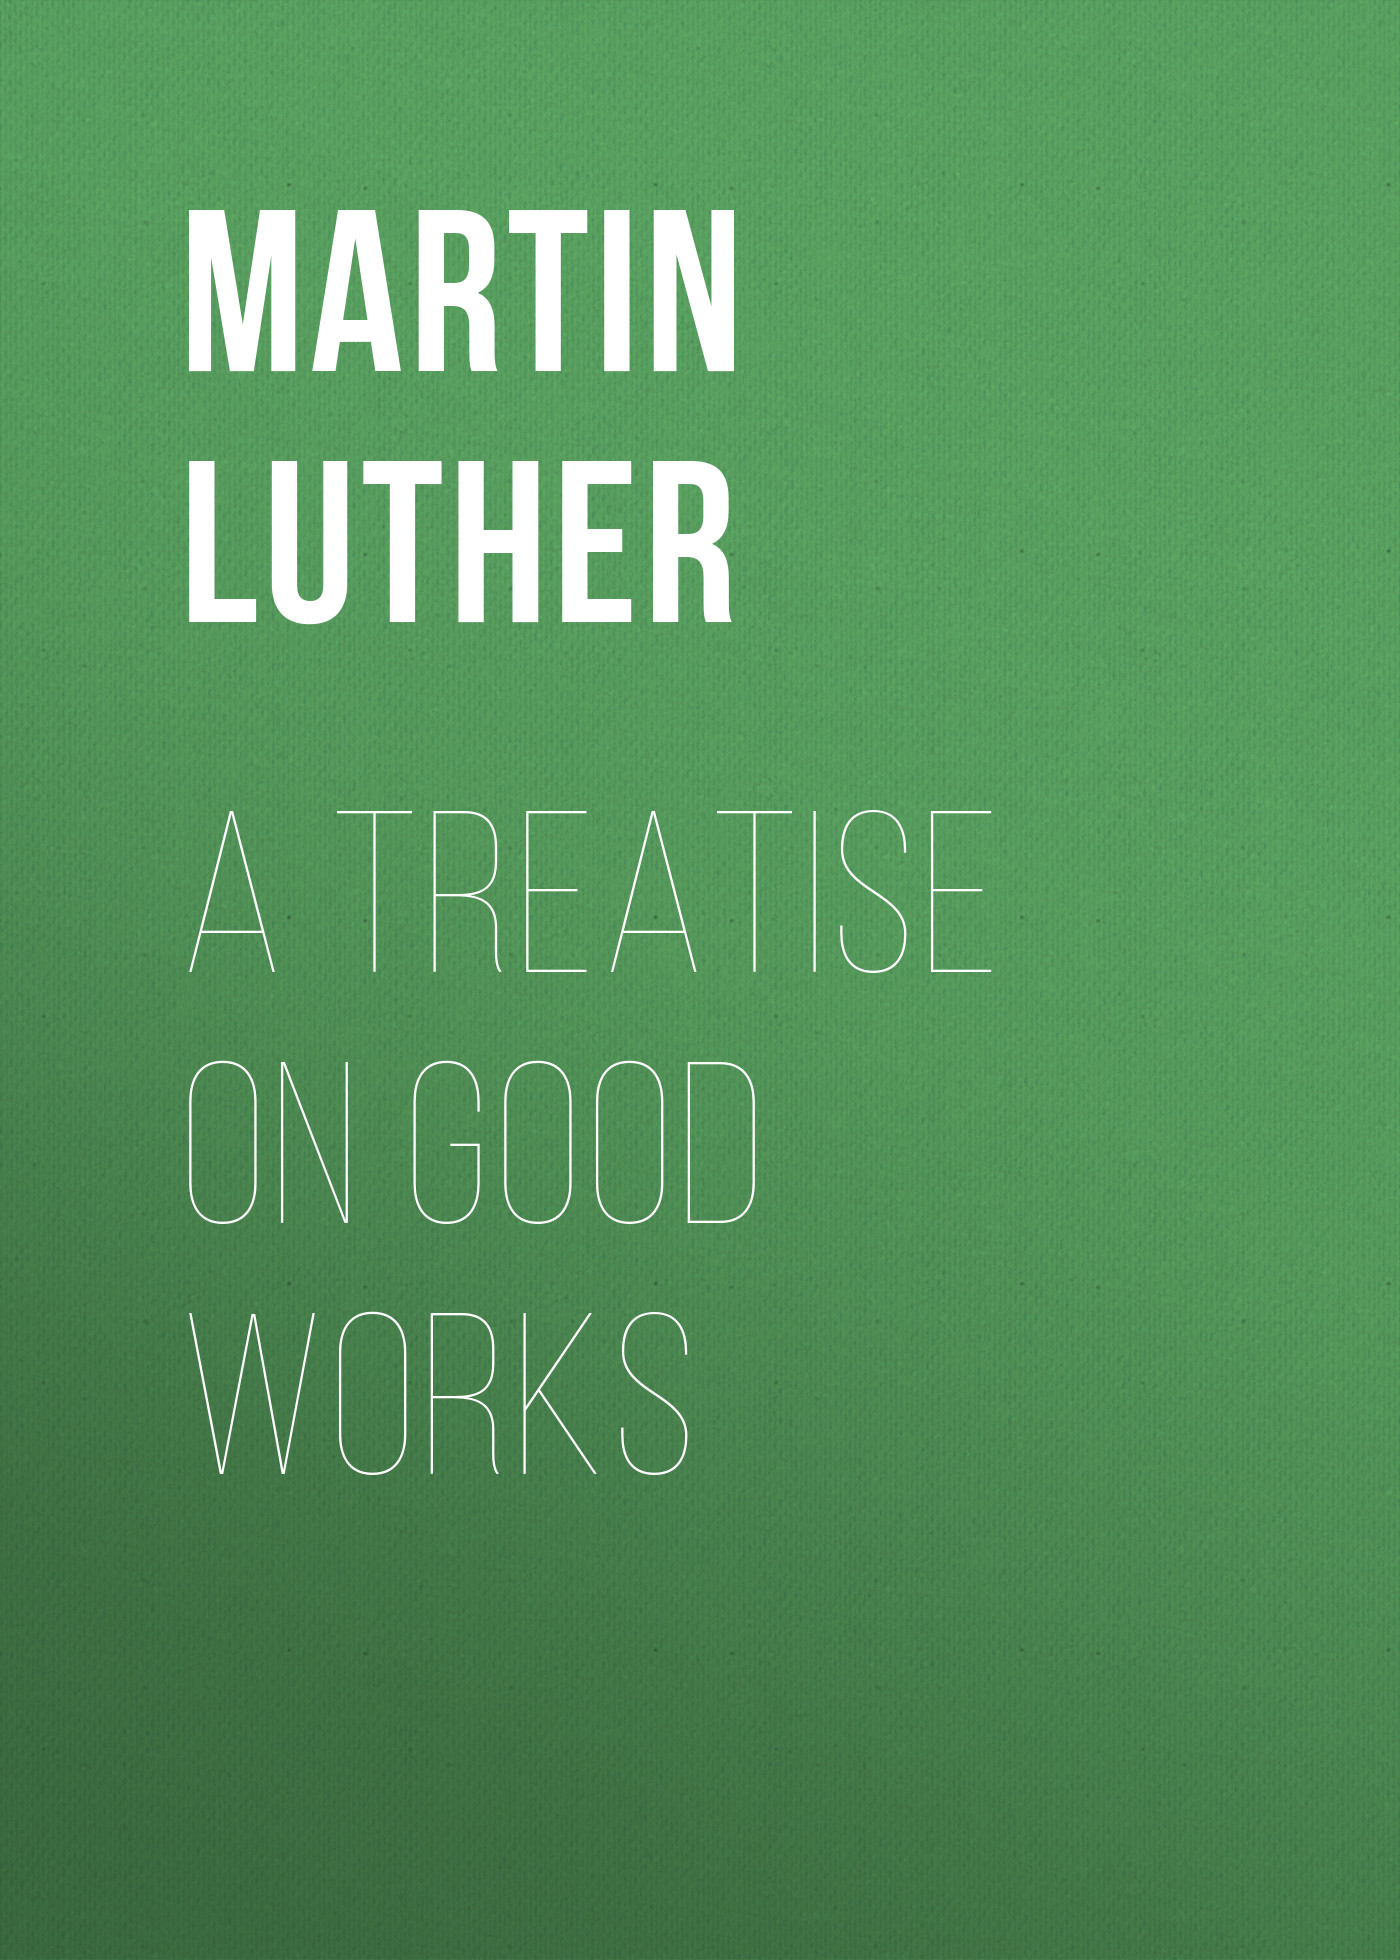 цена на Martin Luther A Treatise on Good Works